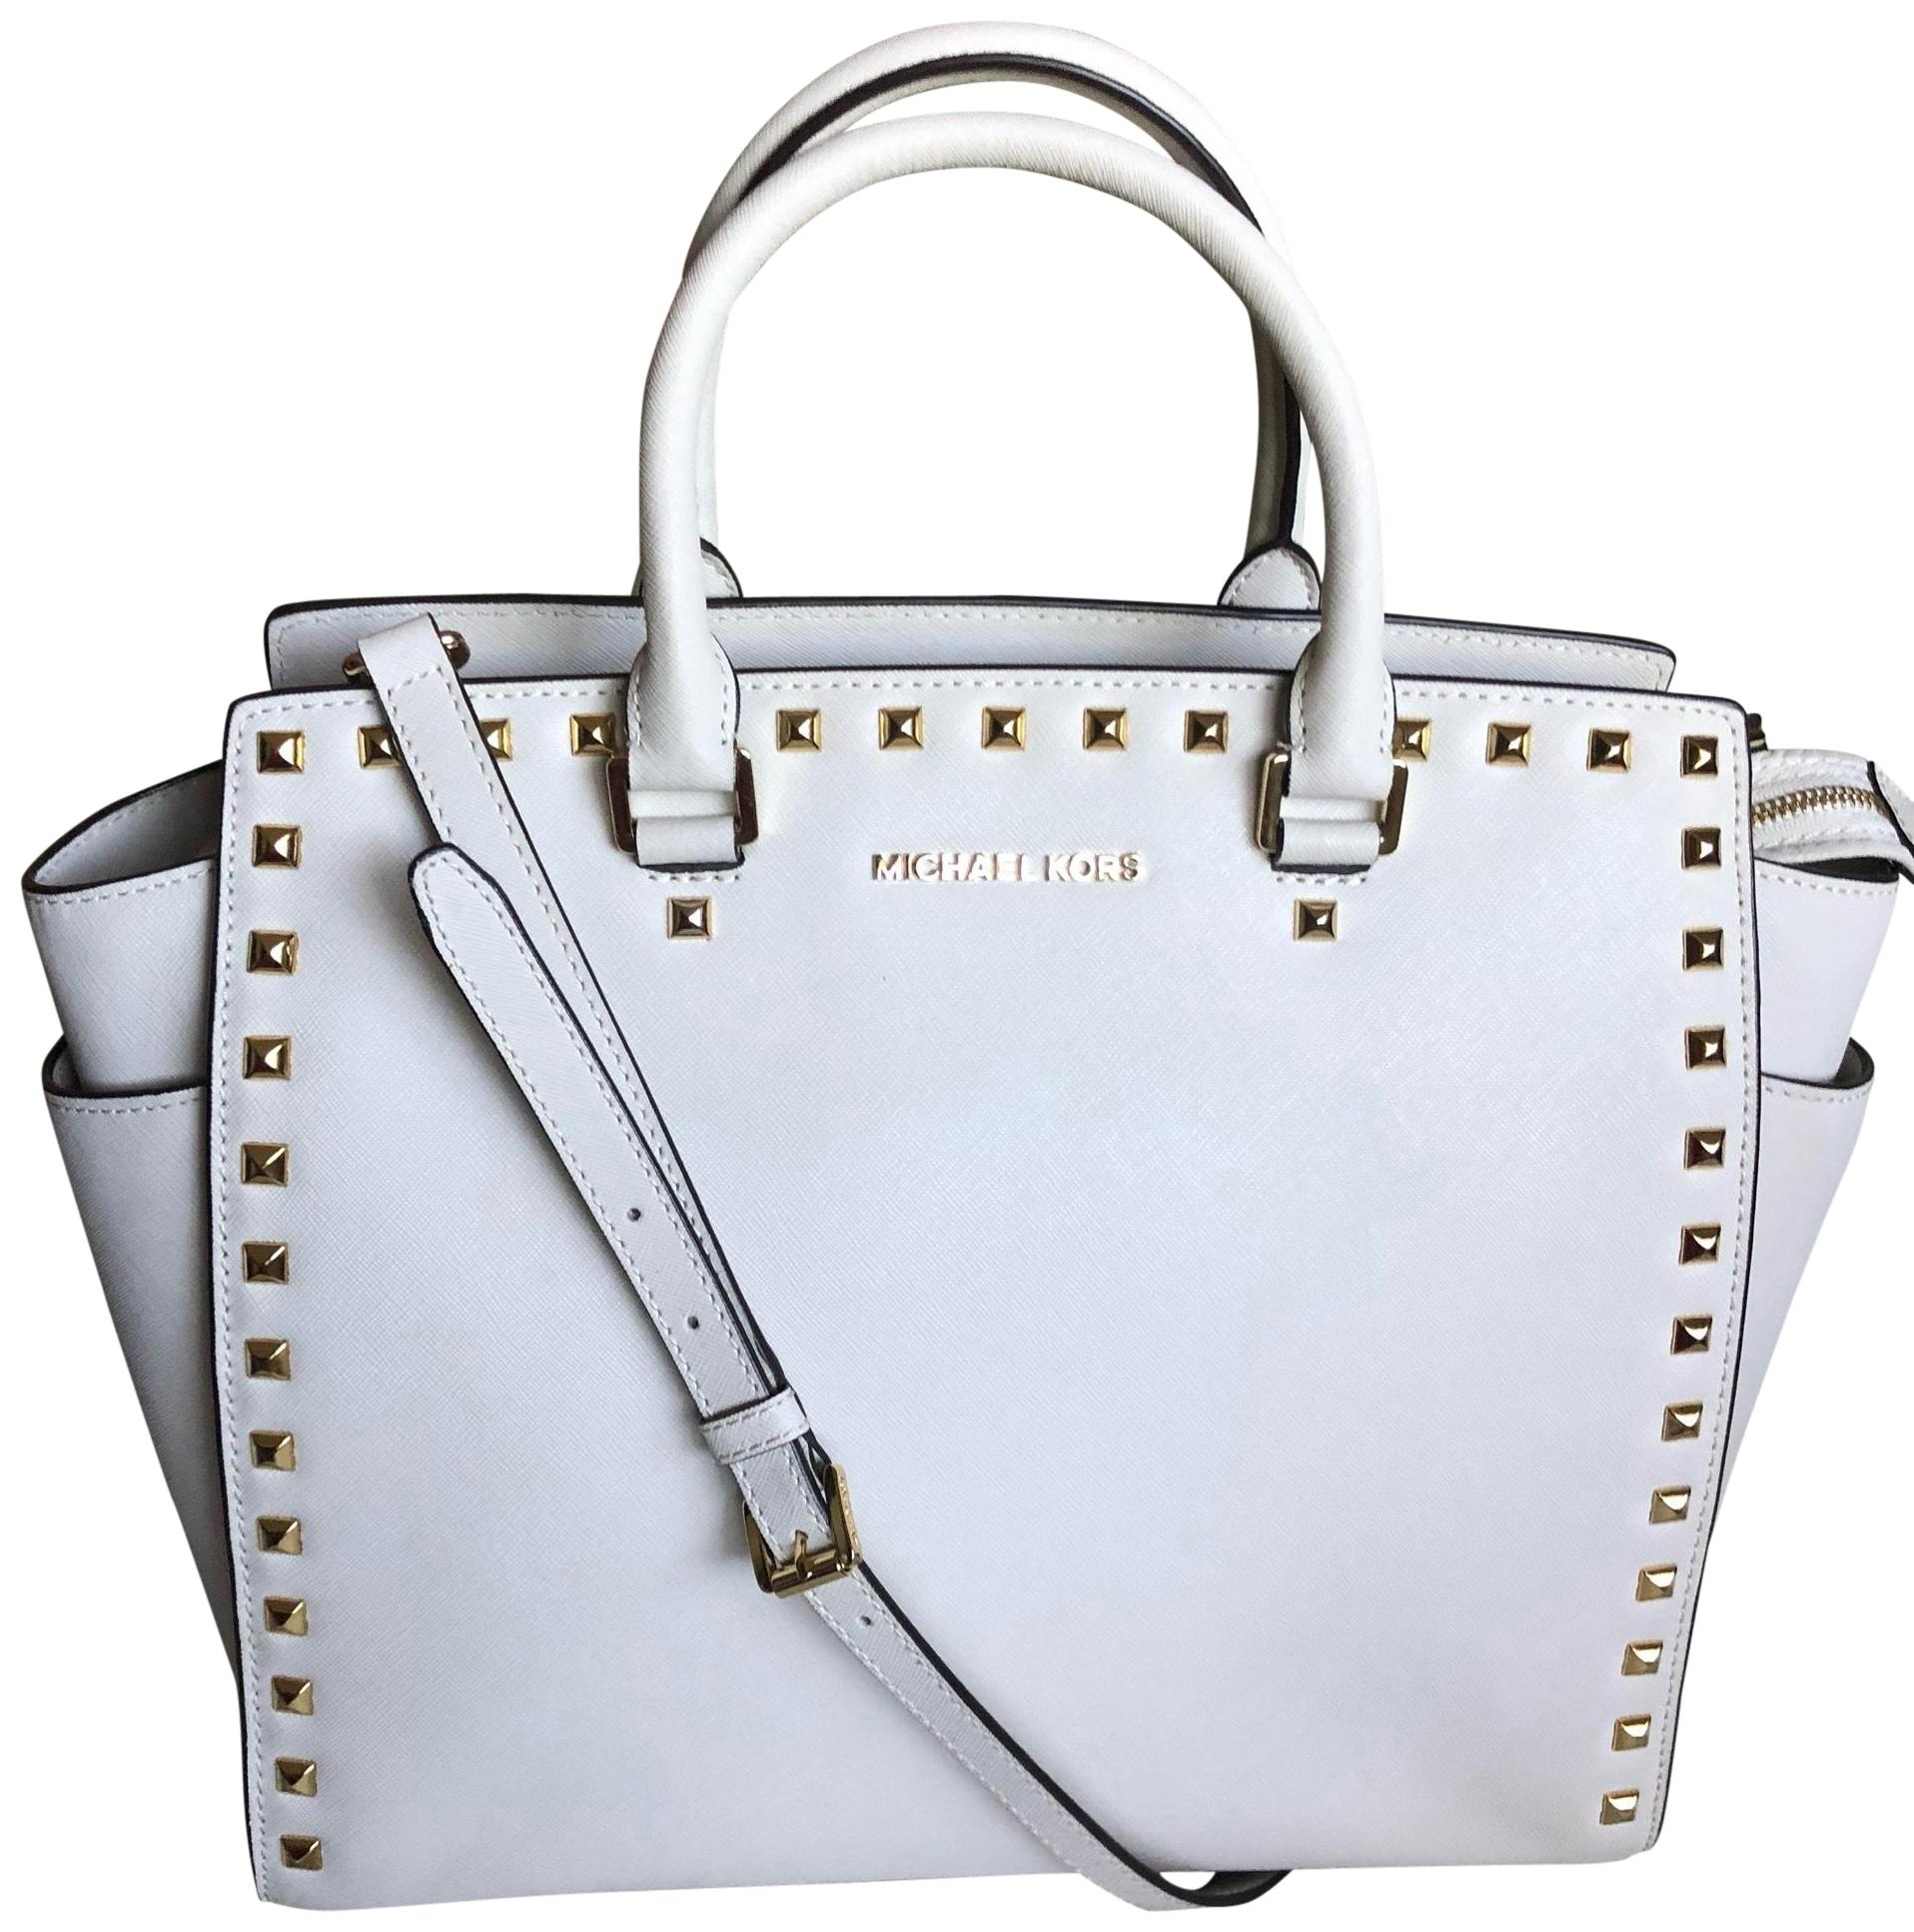 3a34f8309cec ... coupon for michael kors satchel in beige off white 27cb4 257b5